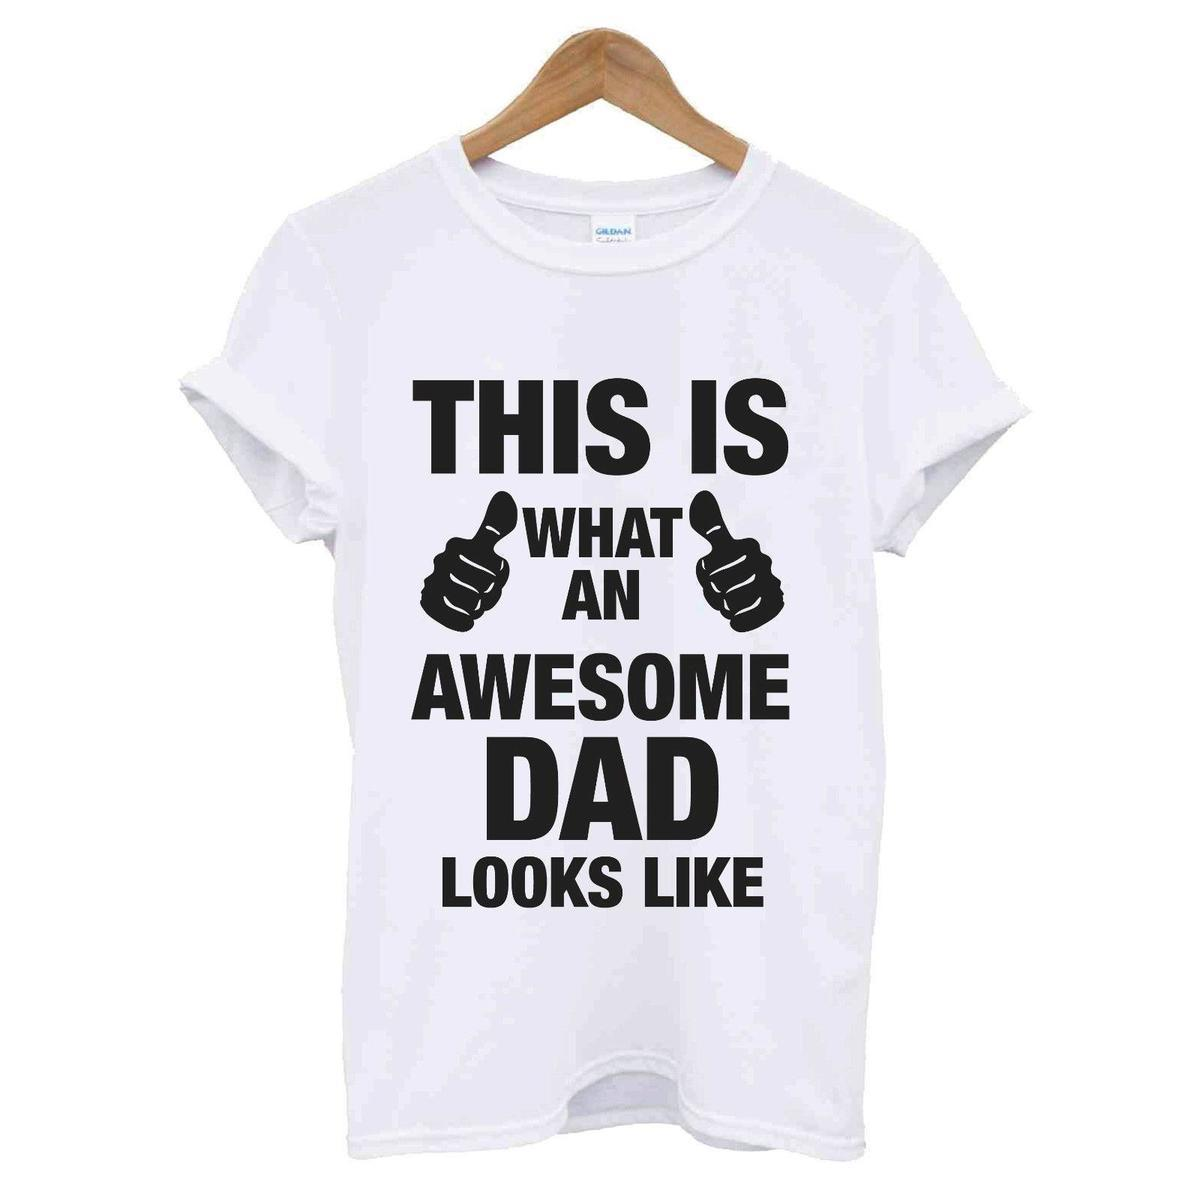 AWESOME SUPER DAD DADDY T SHIRT FATHERS DAY XMAS CHRISTMAS BIRTHDAY GIFT TEE TOP Shirt Shop Online Crazy From Jikai07 1273